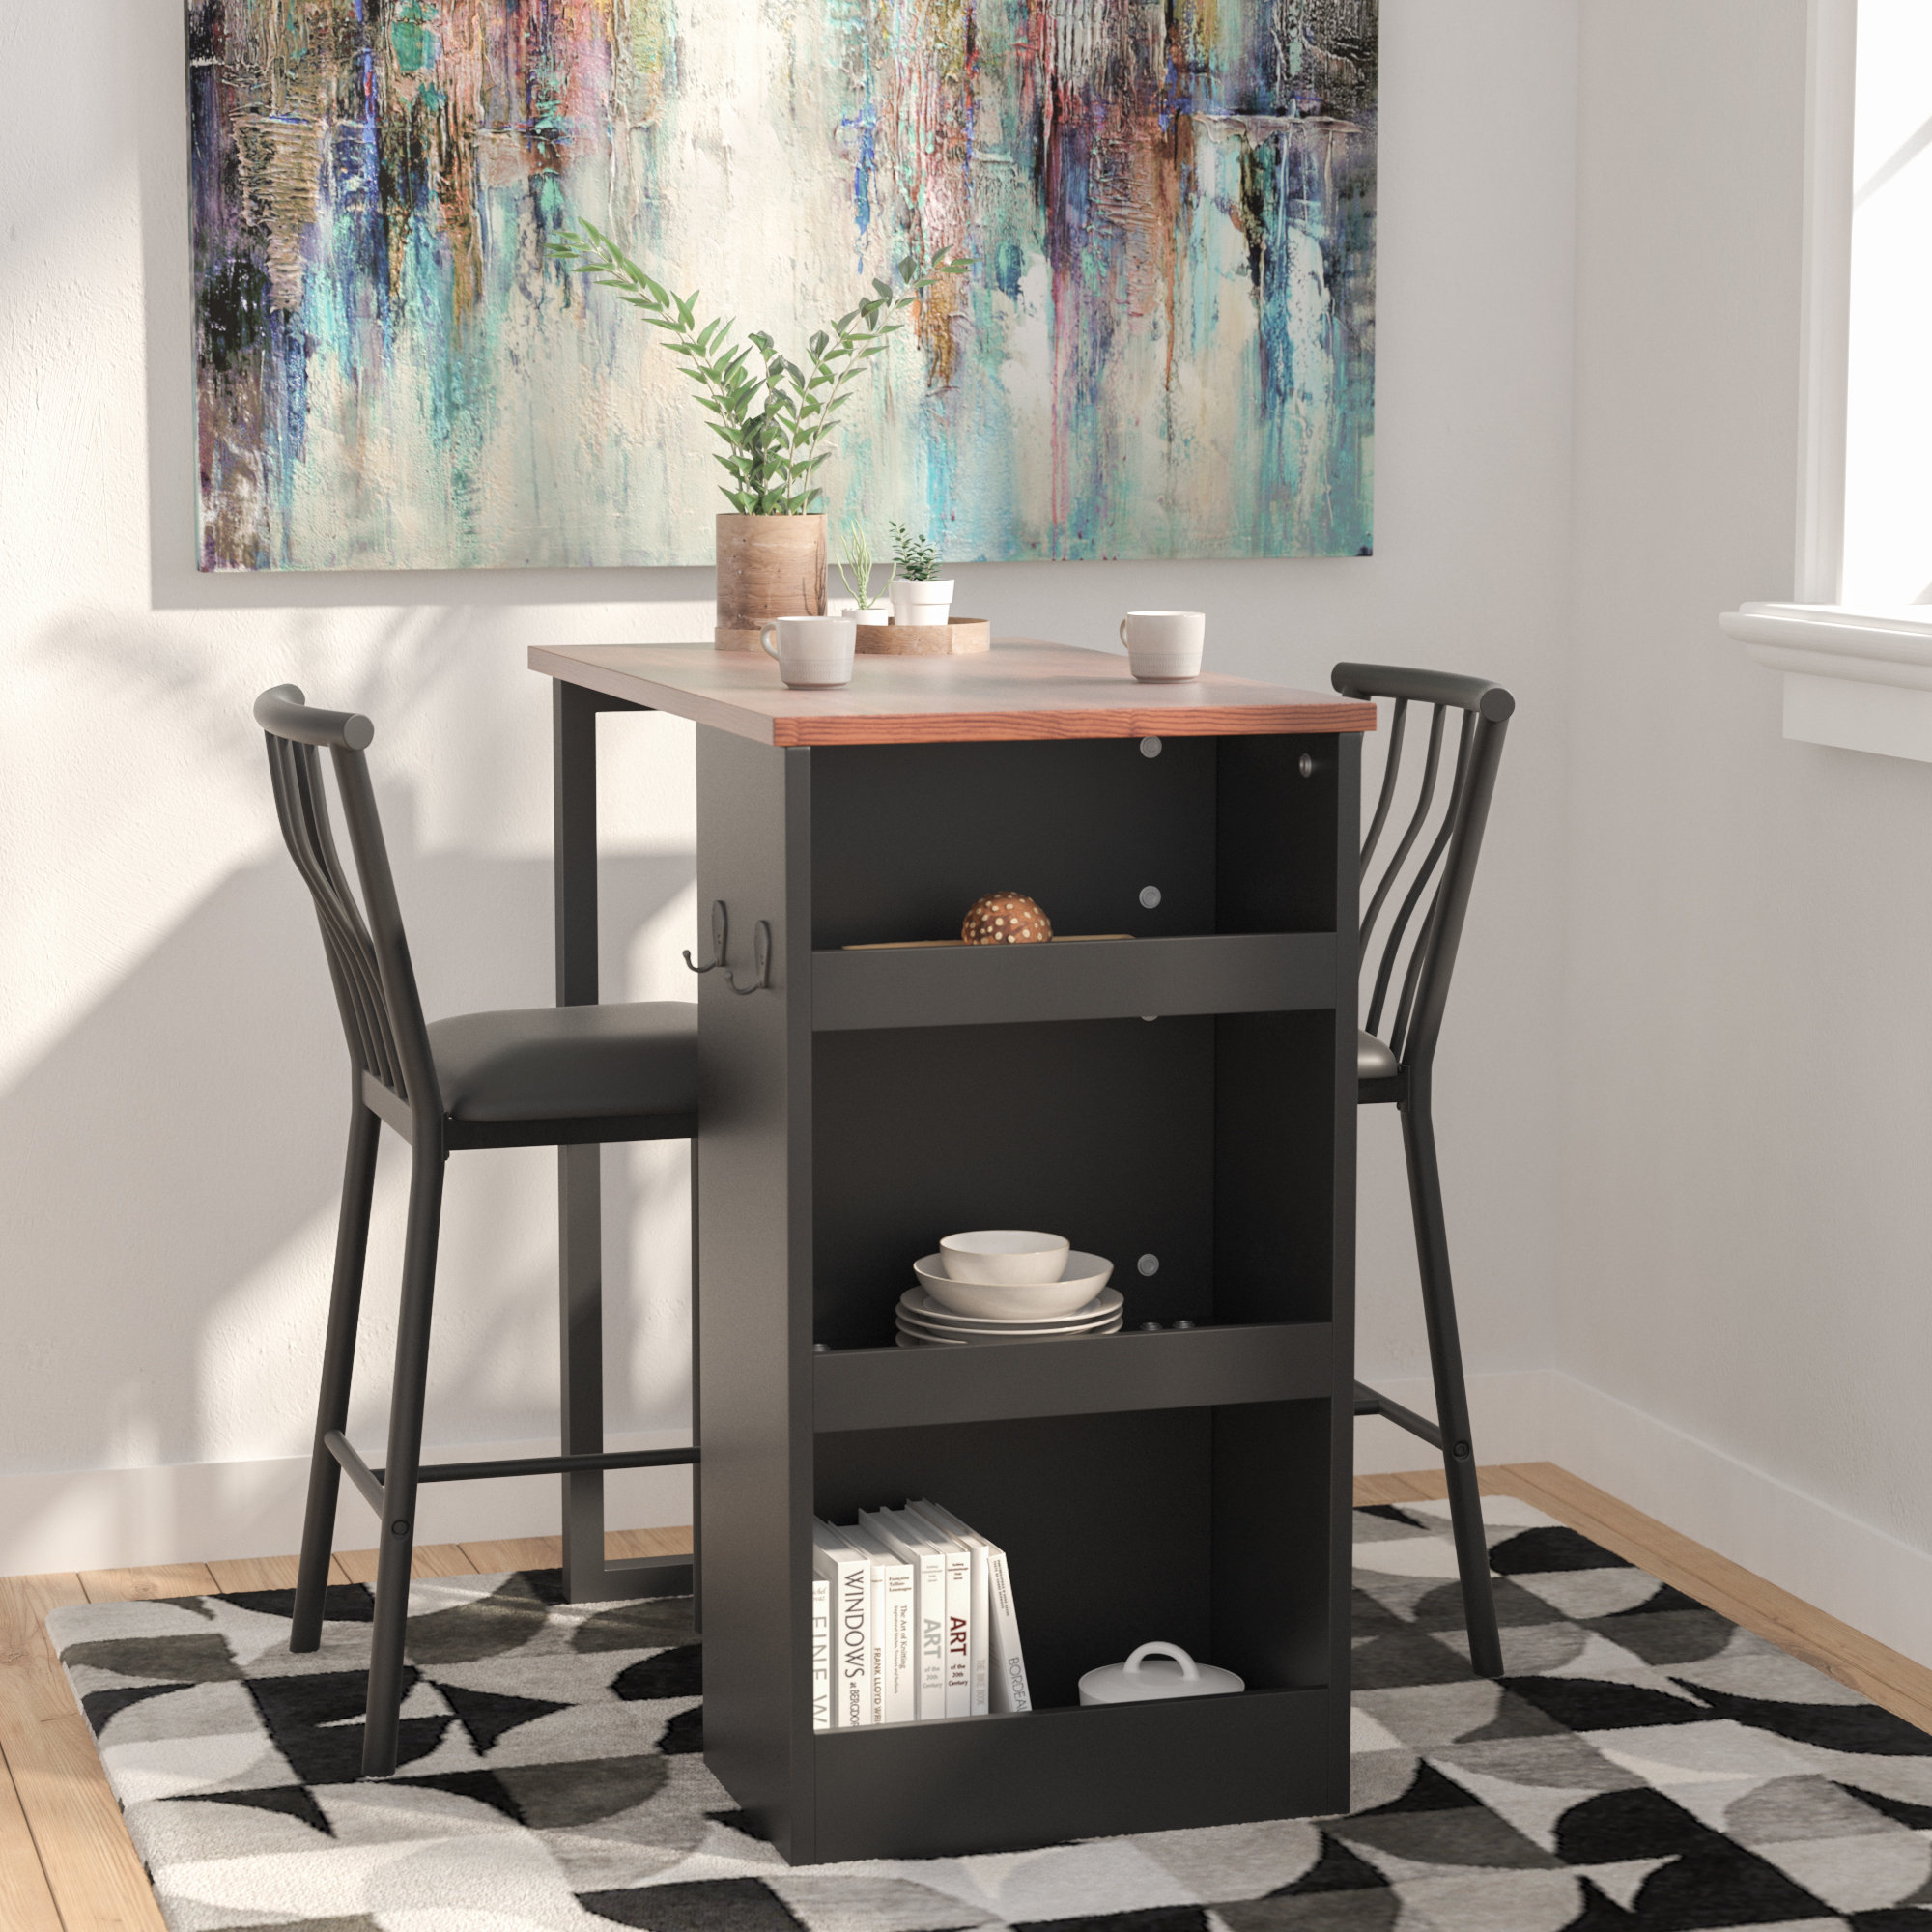 36 Inch Counter Height Table | Wayfair in Parsons Black Marble Top & Stainless Steel Base 48X16 Console Tables (Image 3 of 30)